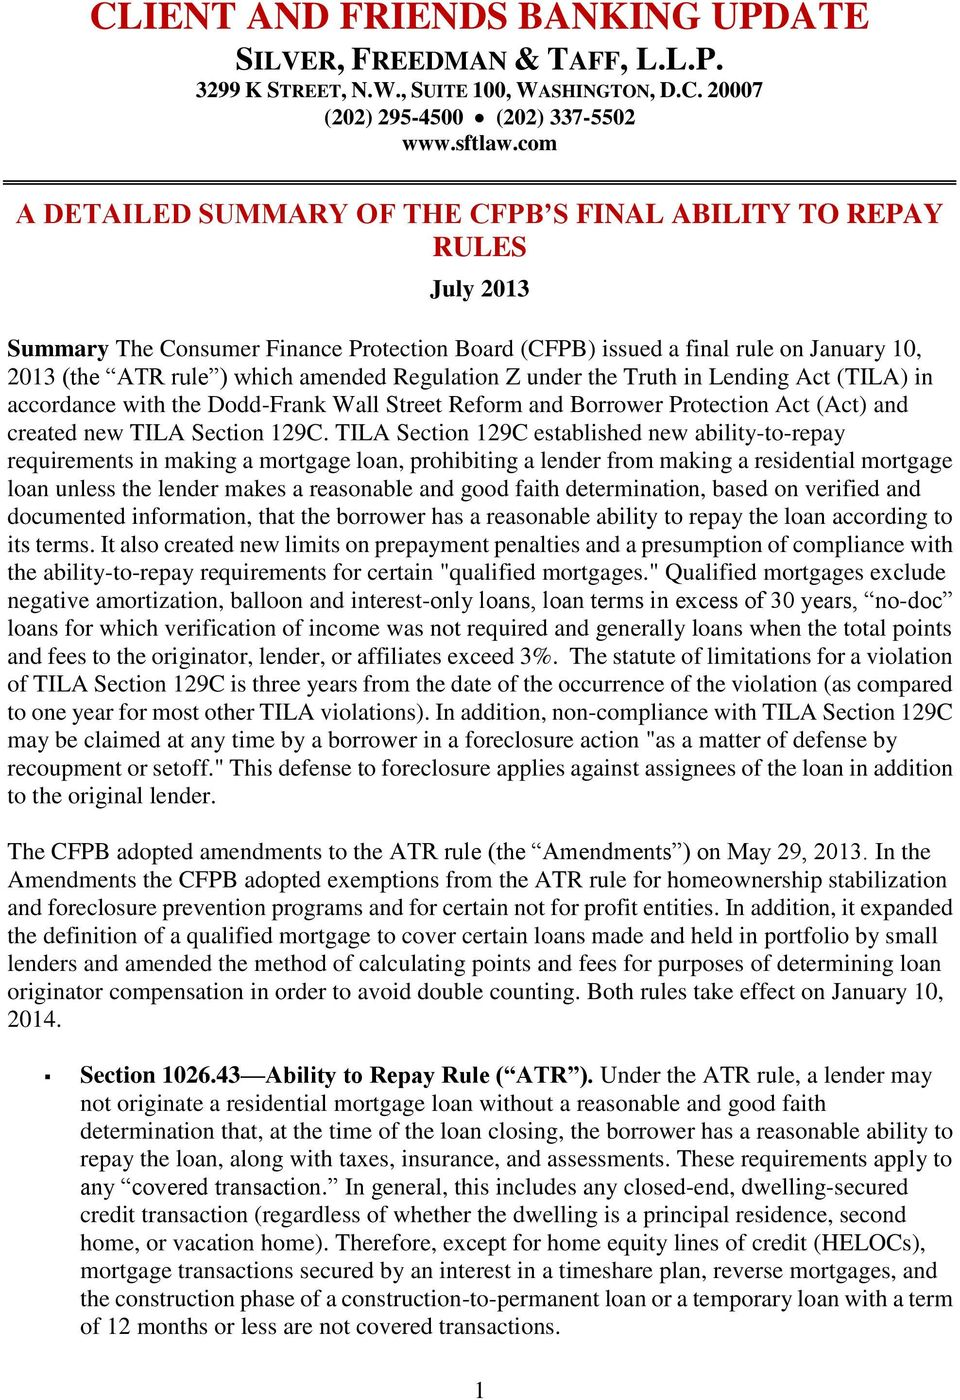 Regulation Z under the Truth in Lending Act (TILA) in accordance with the Dodd-Frank Wall Street Reform and Borrower Protection Act (Act) and created new TILA Section 129C.